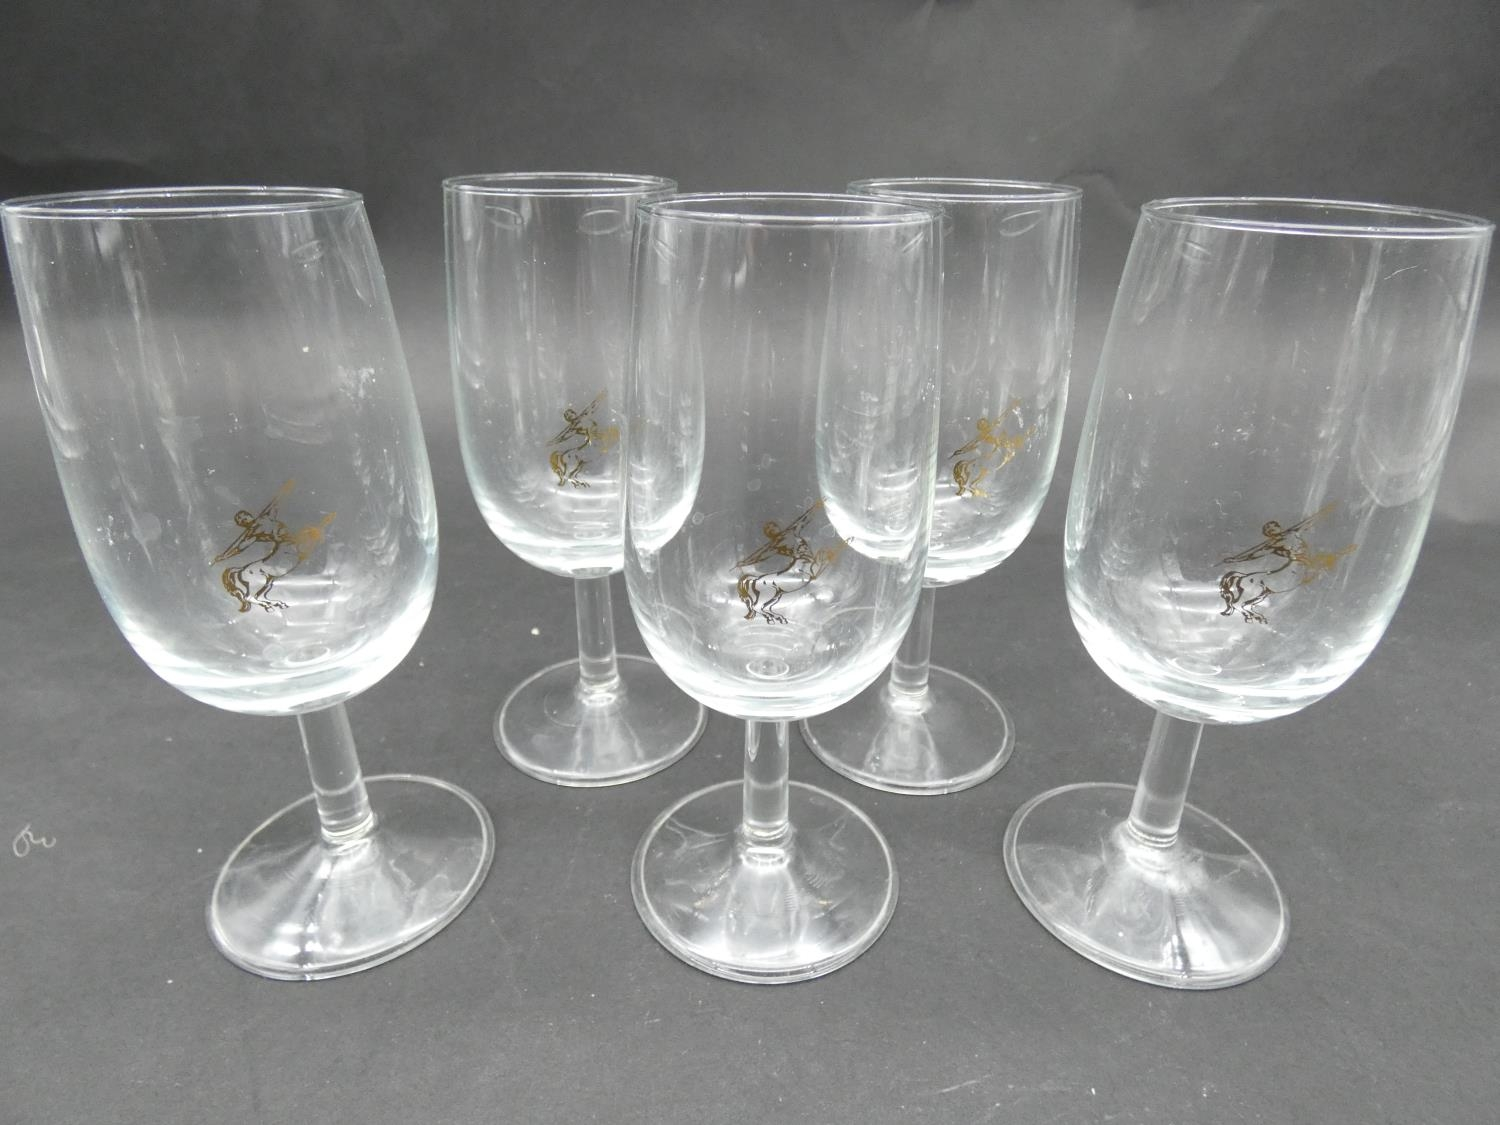 A collection of glasses. Including a set of five sherry glasses with gilded Orion symbols, along - Image 5 of 14